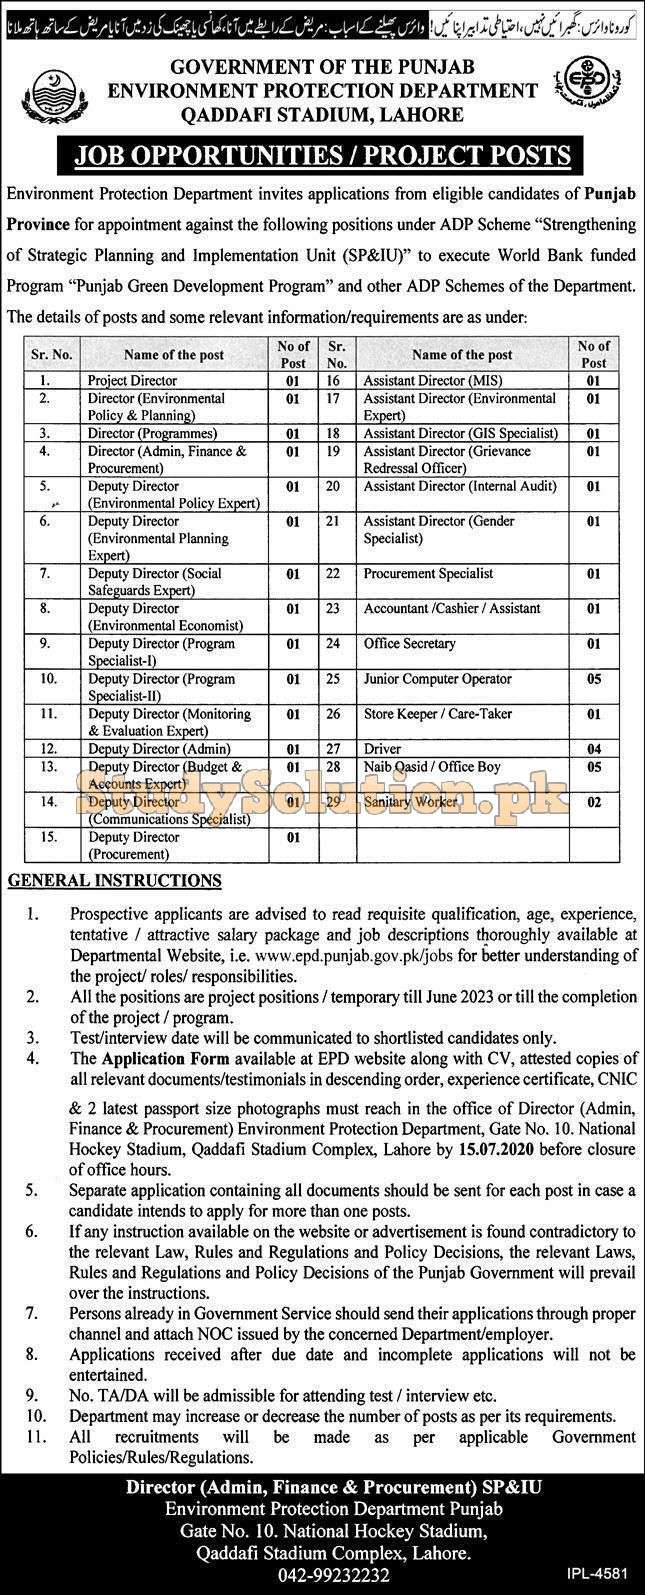 Punjab Government Environment Protection Department Jobs 2020